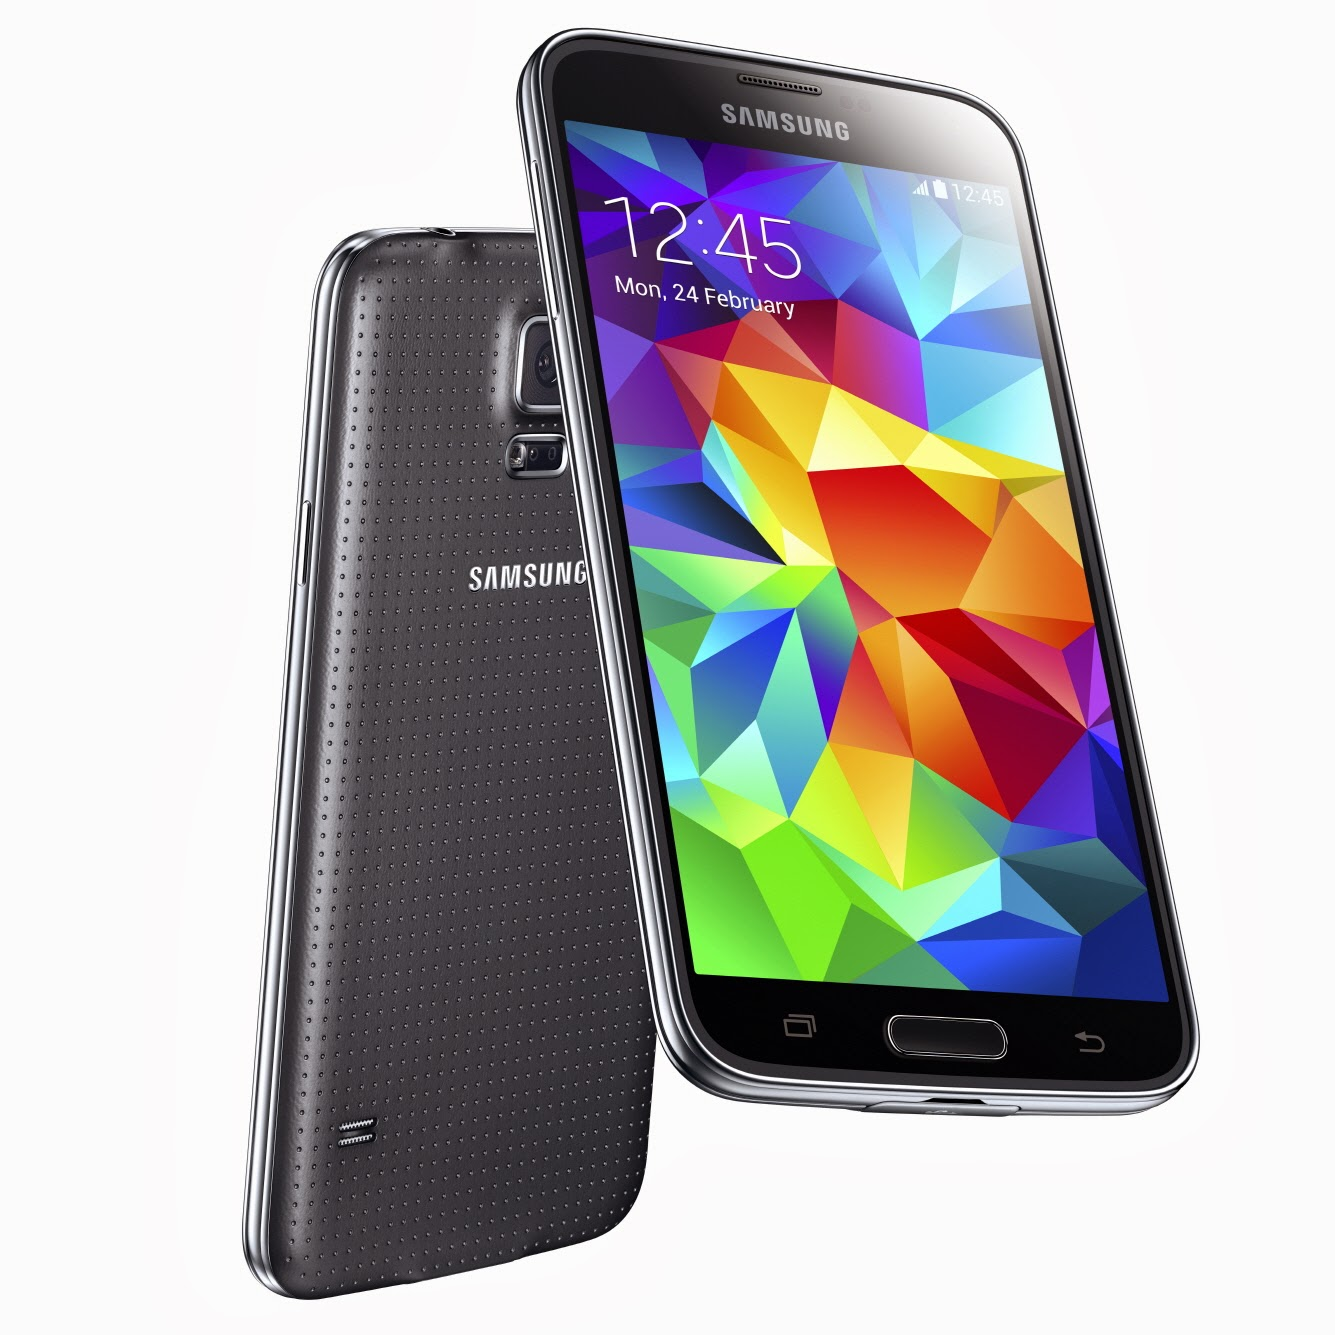 Samsung Galaxy S5 Smart postpaid